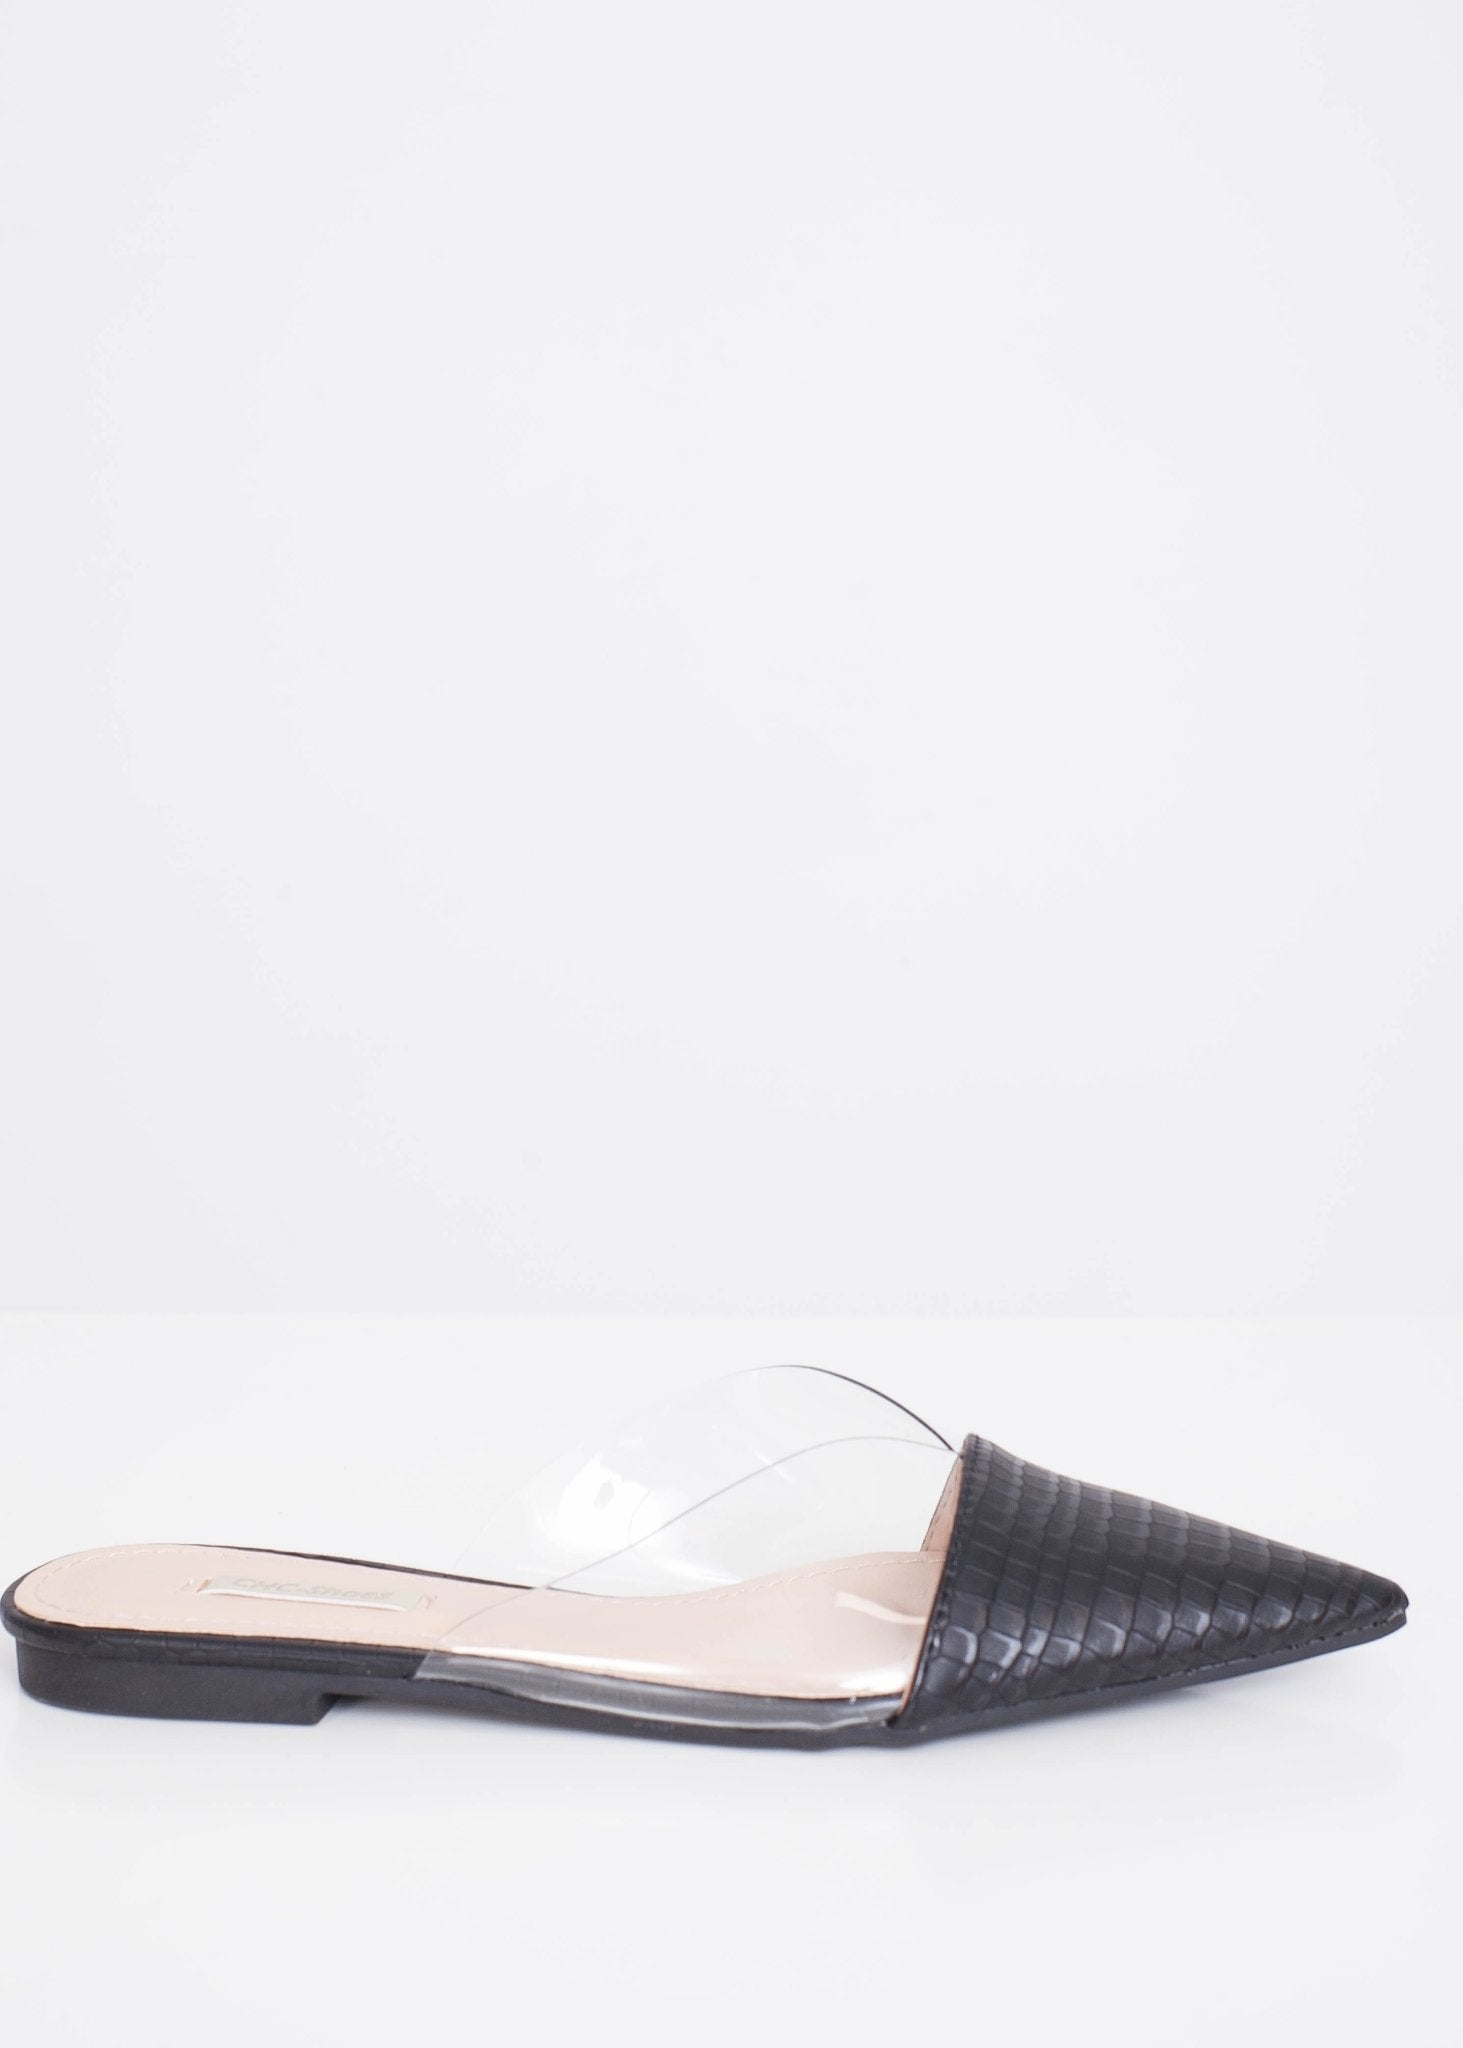 Priya Black Croc Mules - The Walk in Wardrobe